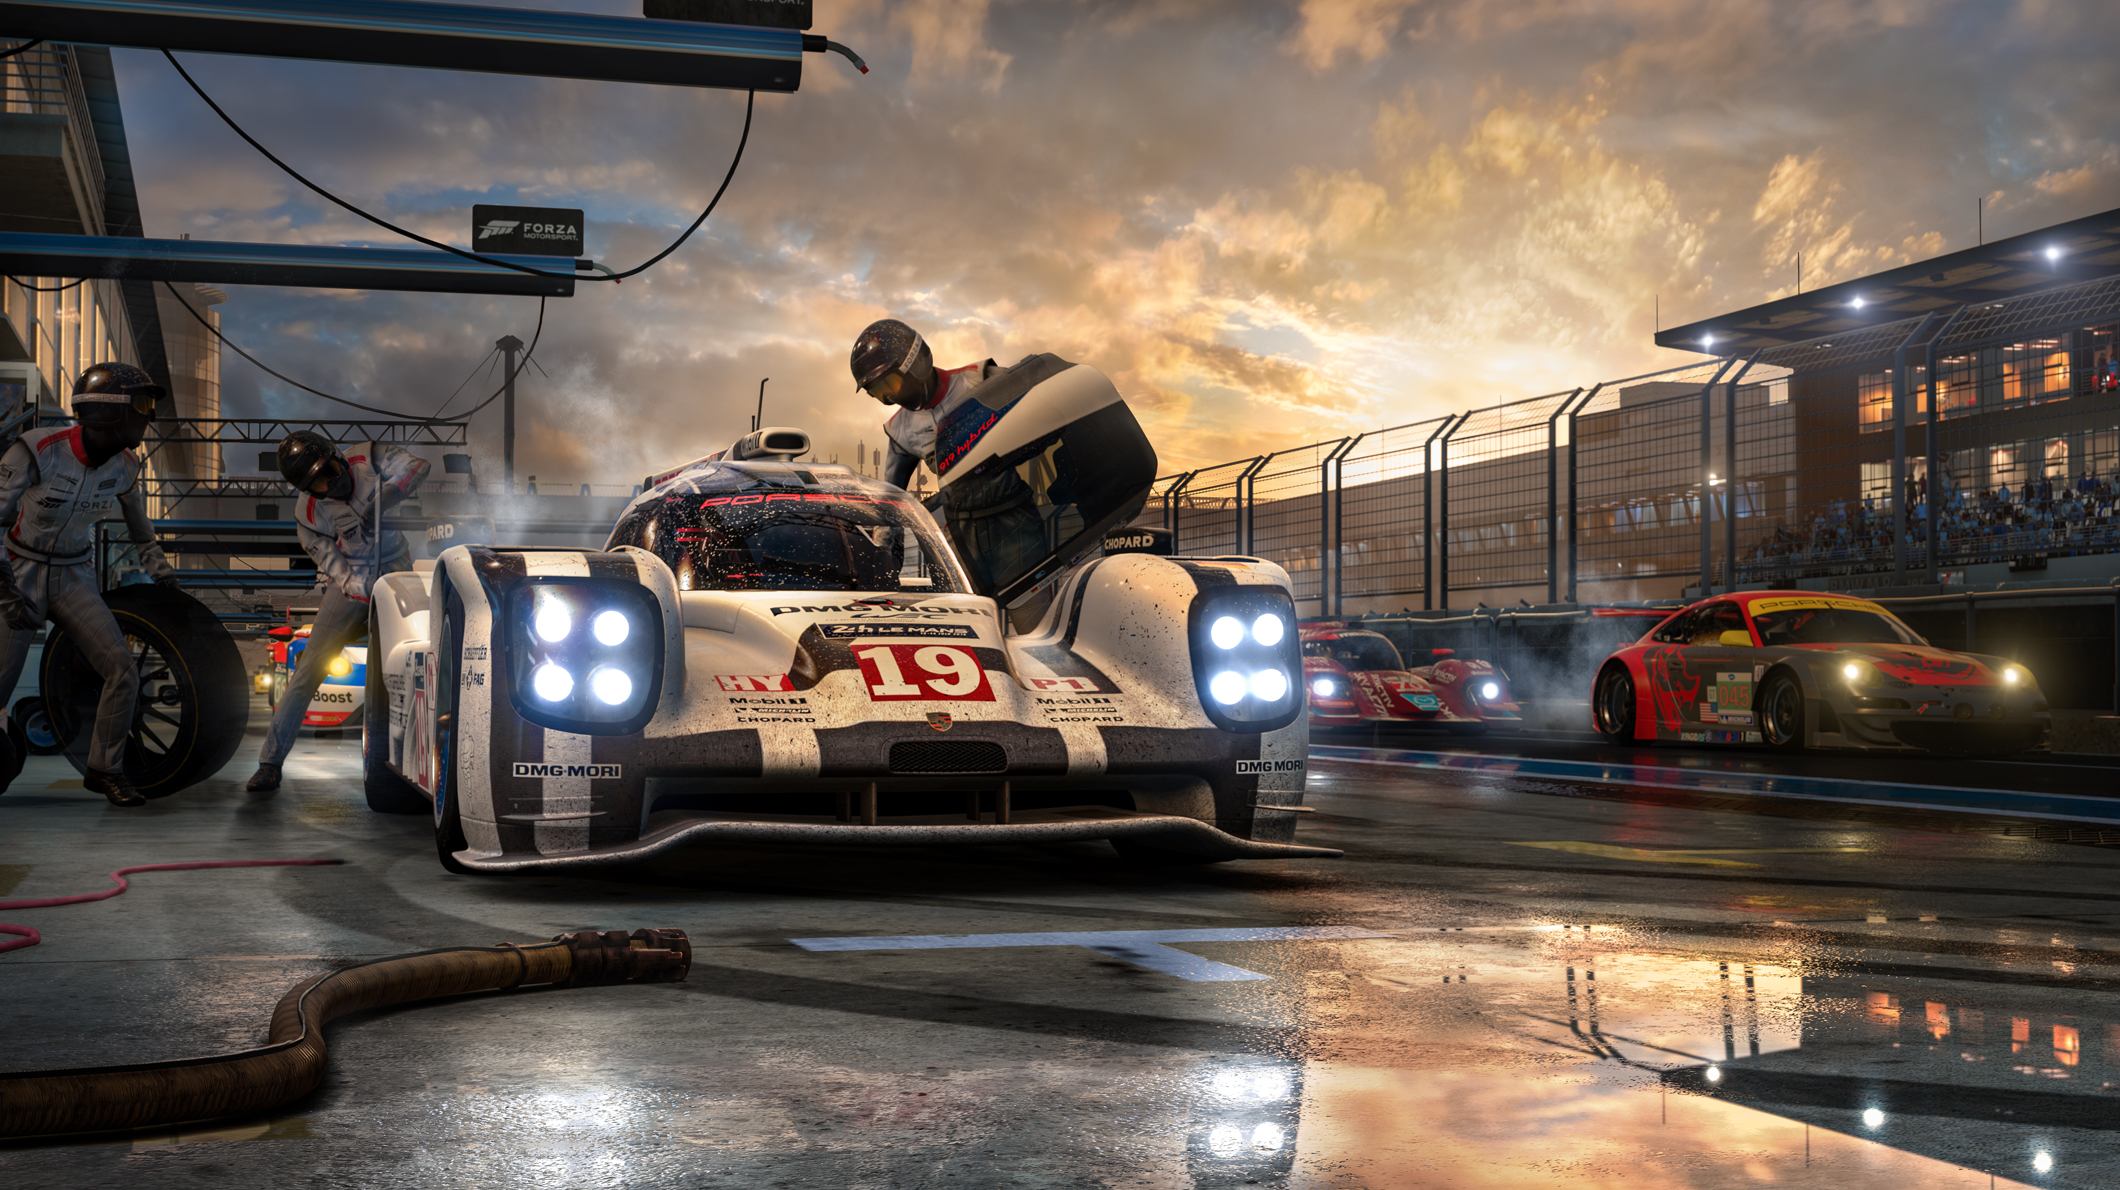 Forza 7 for Xbox One X